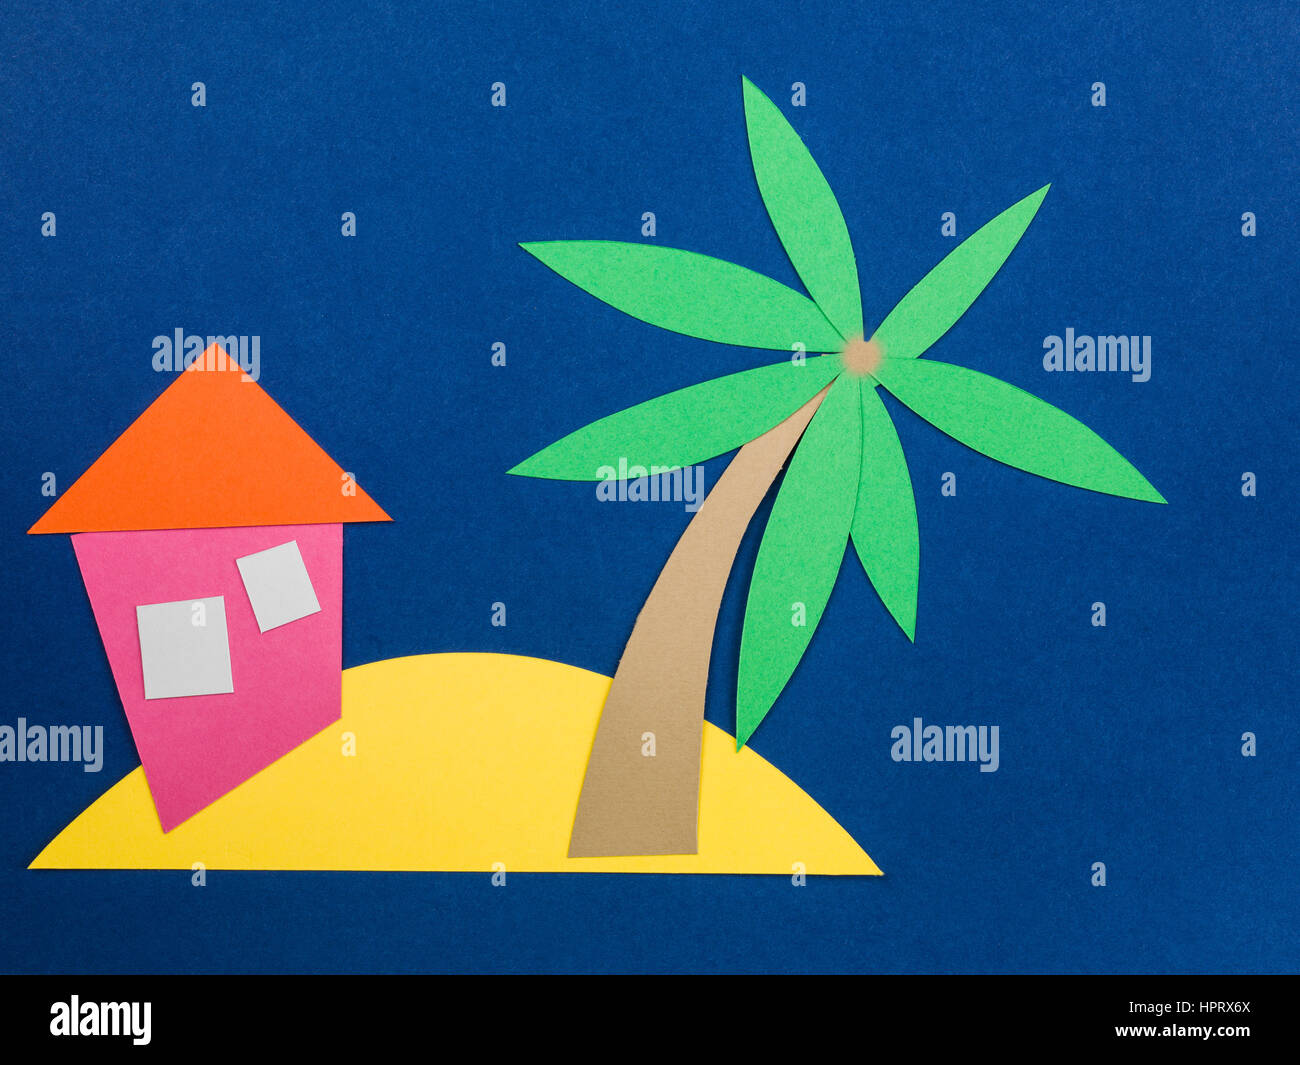 Illustration of a Desert Island with a Palm Tree and a Shack Stock Photo